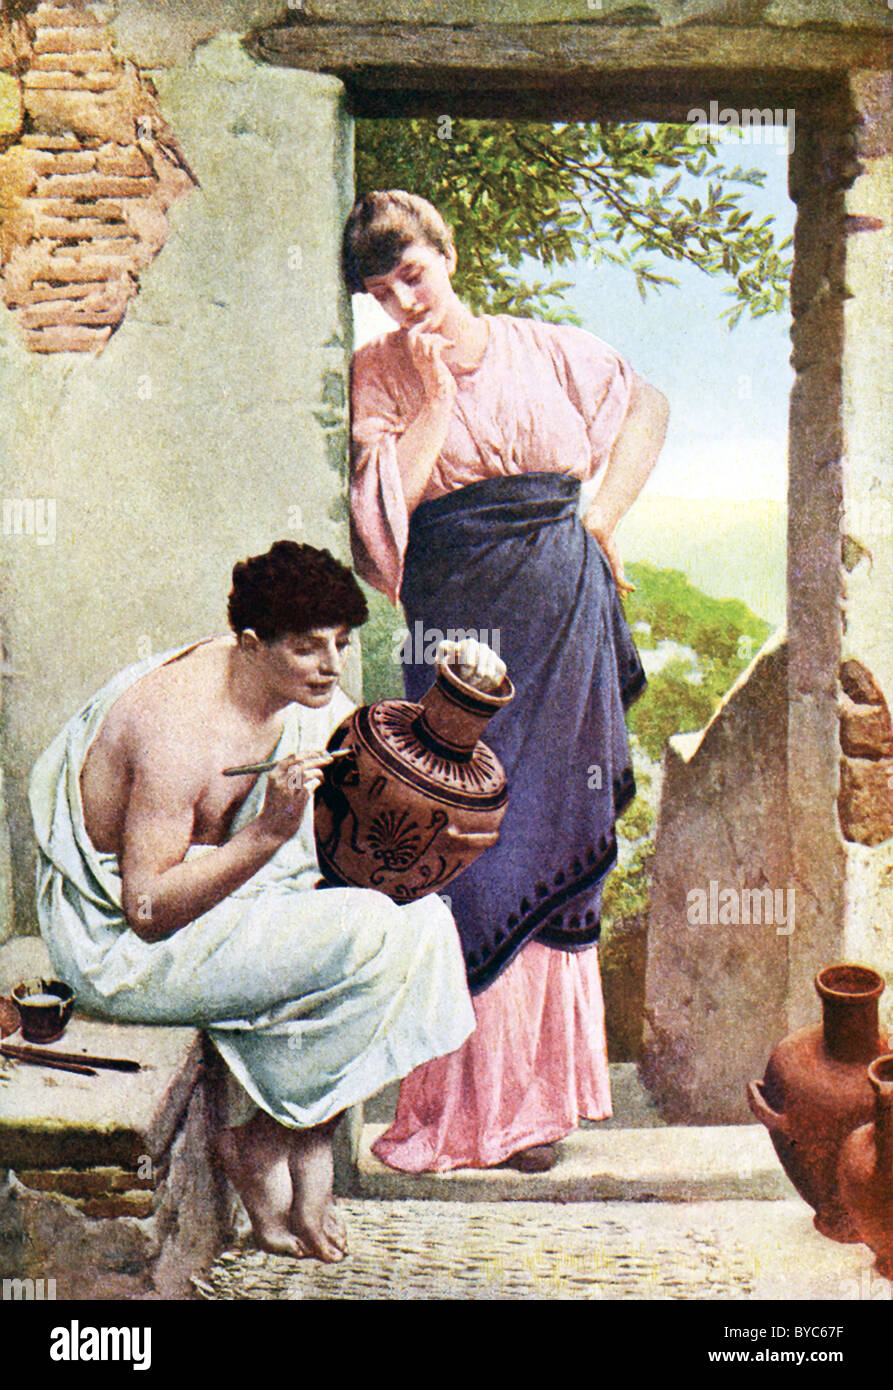 A young Greek maiden watches a Greek artisan decorate a large earthenware container. - Stock Image